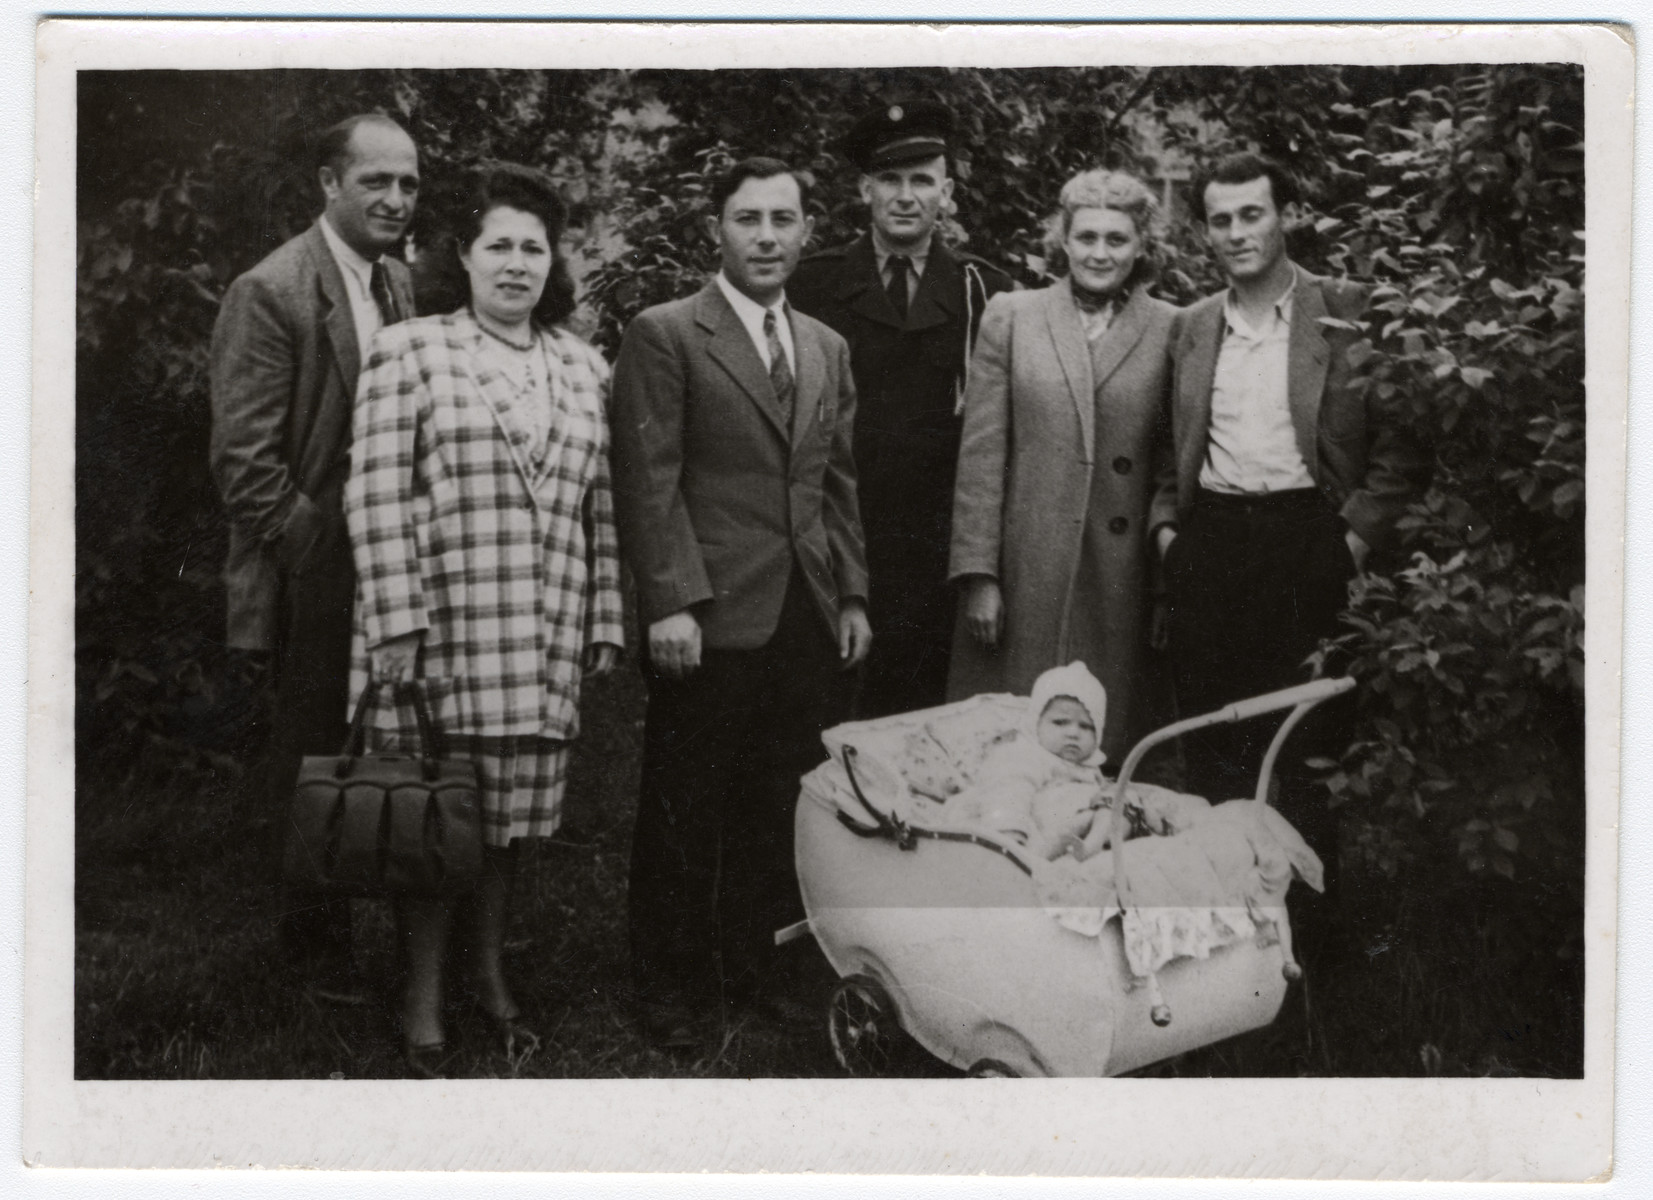 Group portrait of Jewish displaced persons in Leipheim.  From left to right are an unidentified couple, Rubin Kaplan, Zalman Kaplan (his cousin), Dwora (another cousin) and her husband Eli Flaks and their infant Pearl.